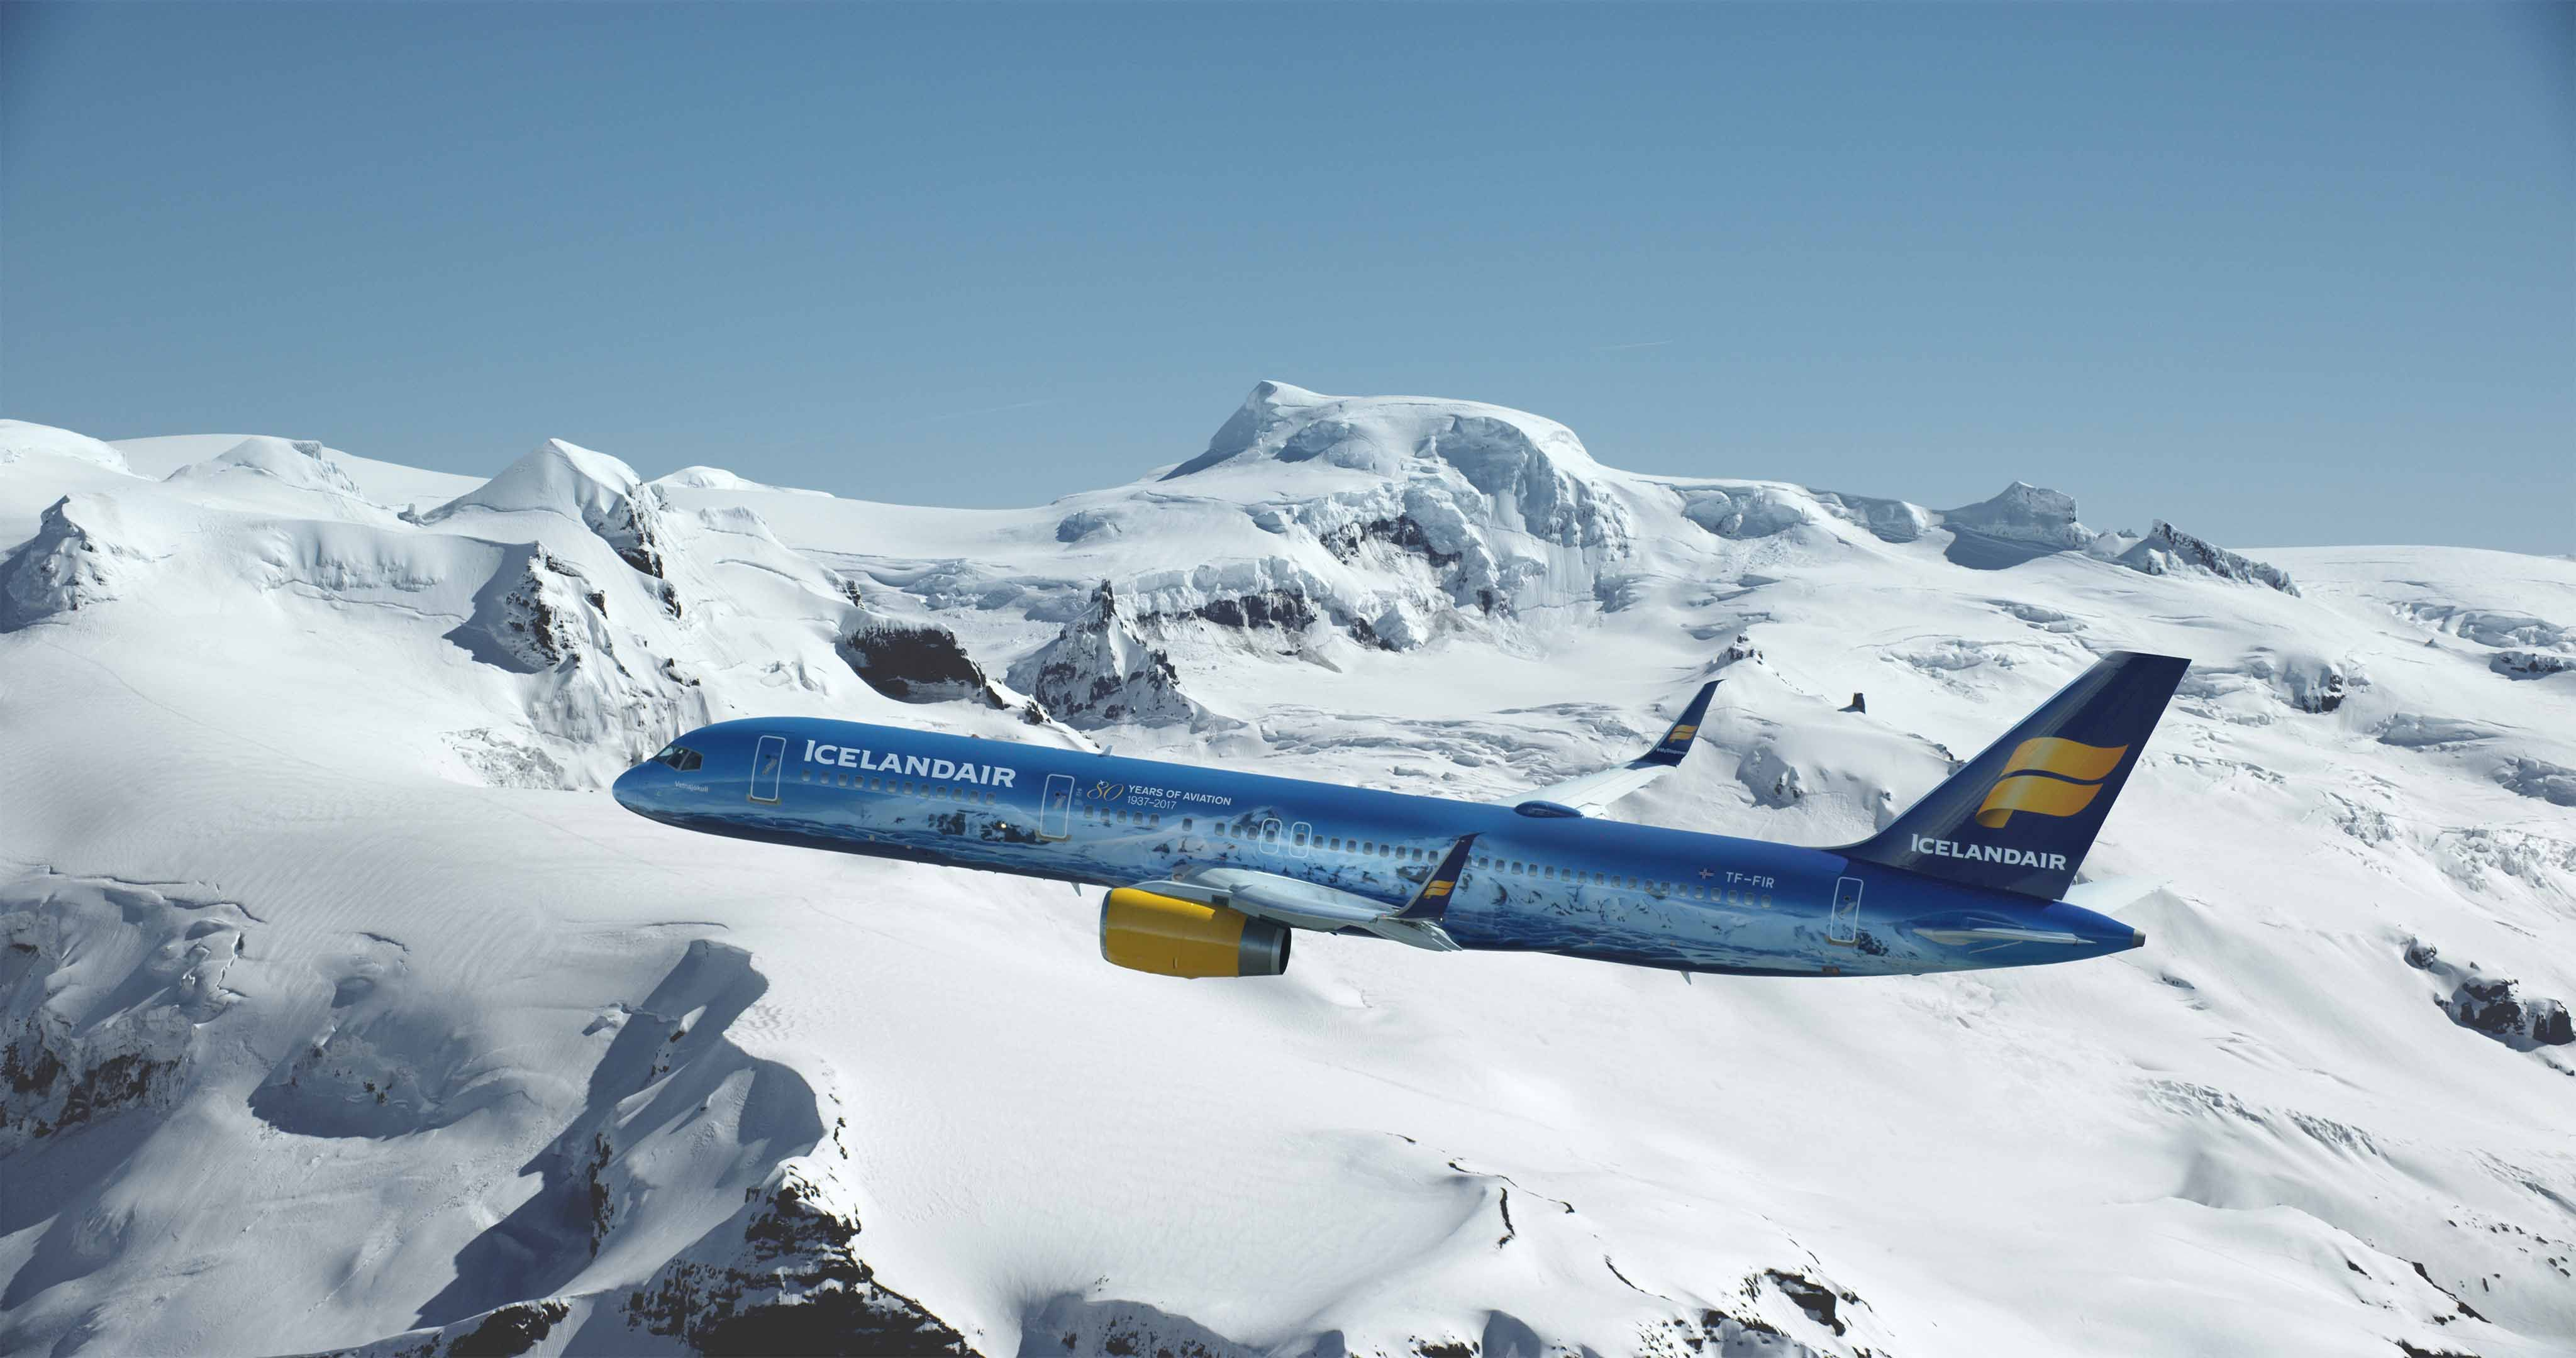 1494926674_Icelandair_s_new_livery_Vatnajo_kull_takes_a_celebratory_flight_over_the_largest_glacial_mass_in_Europe_3_